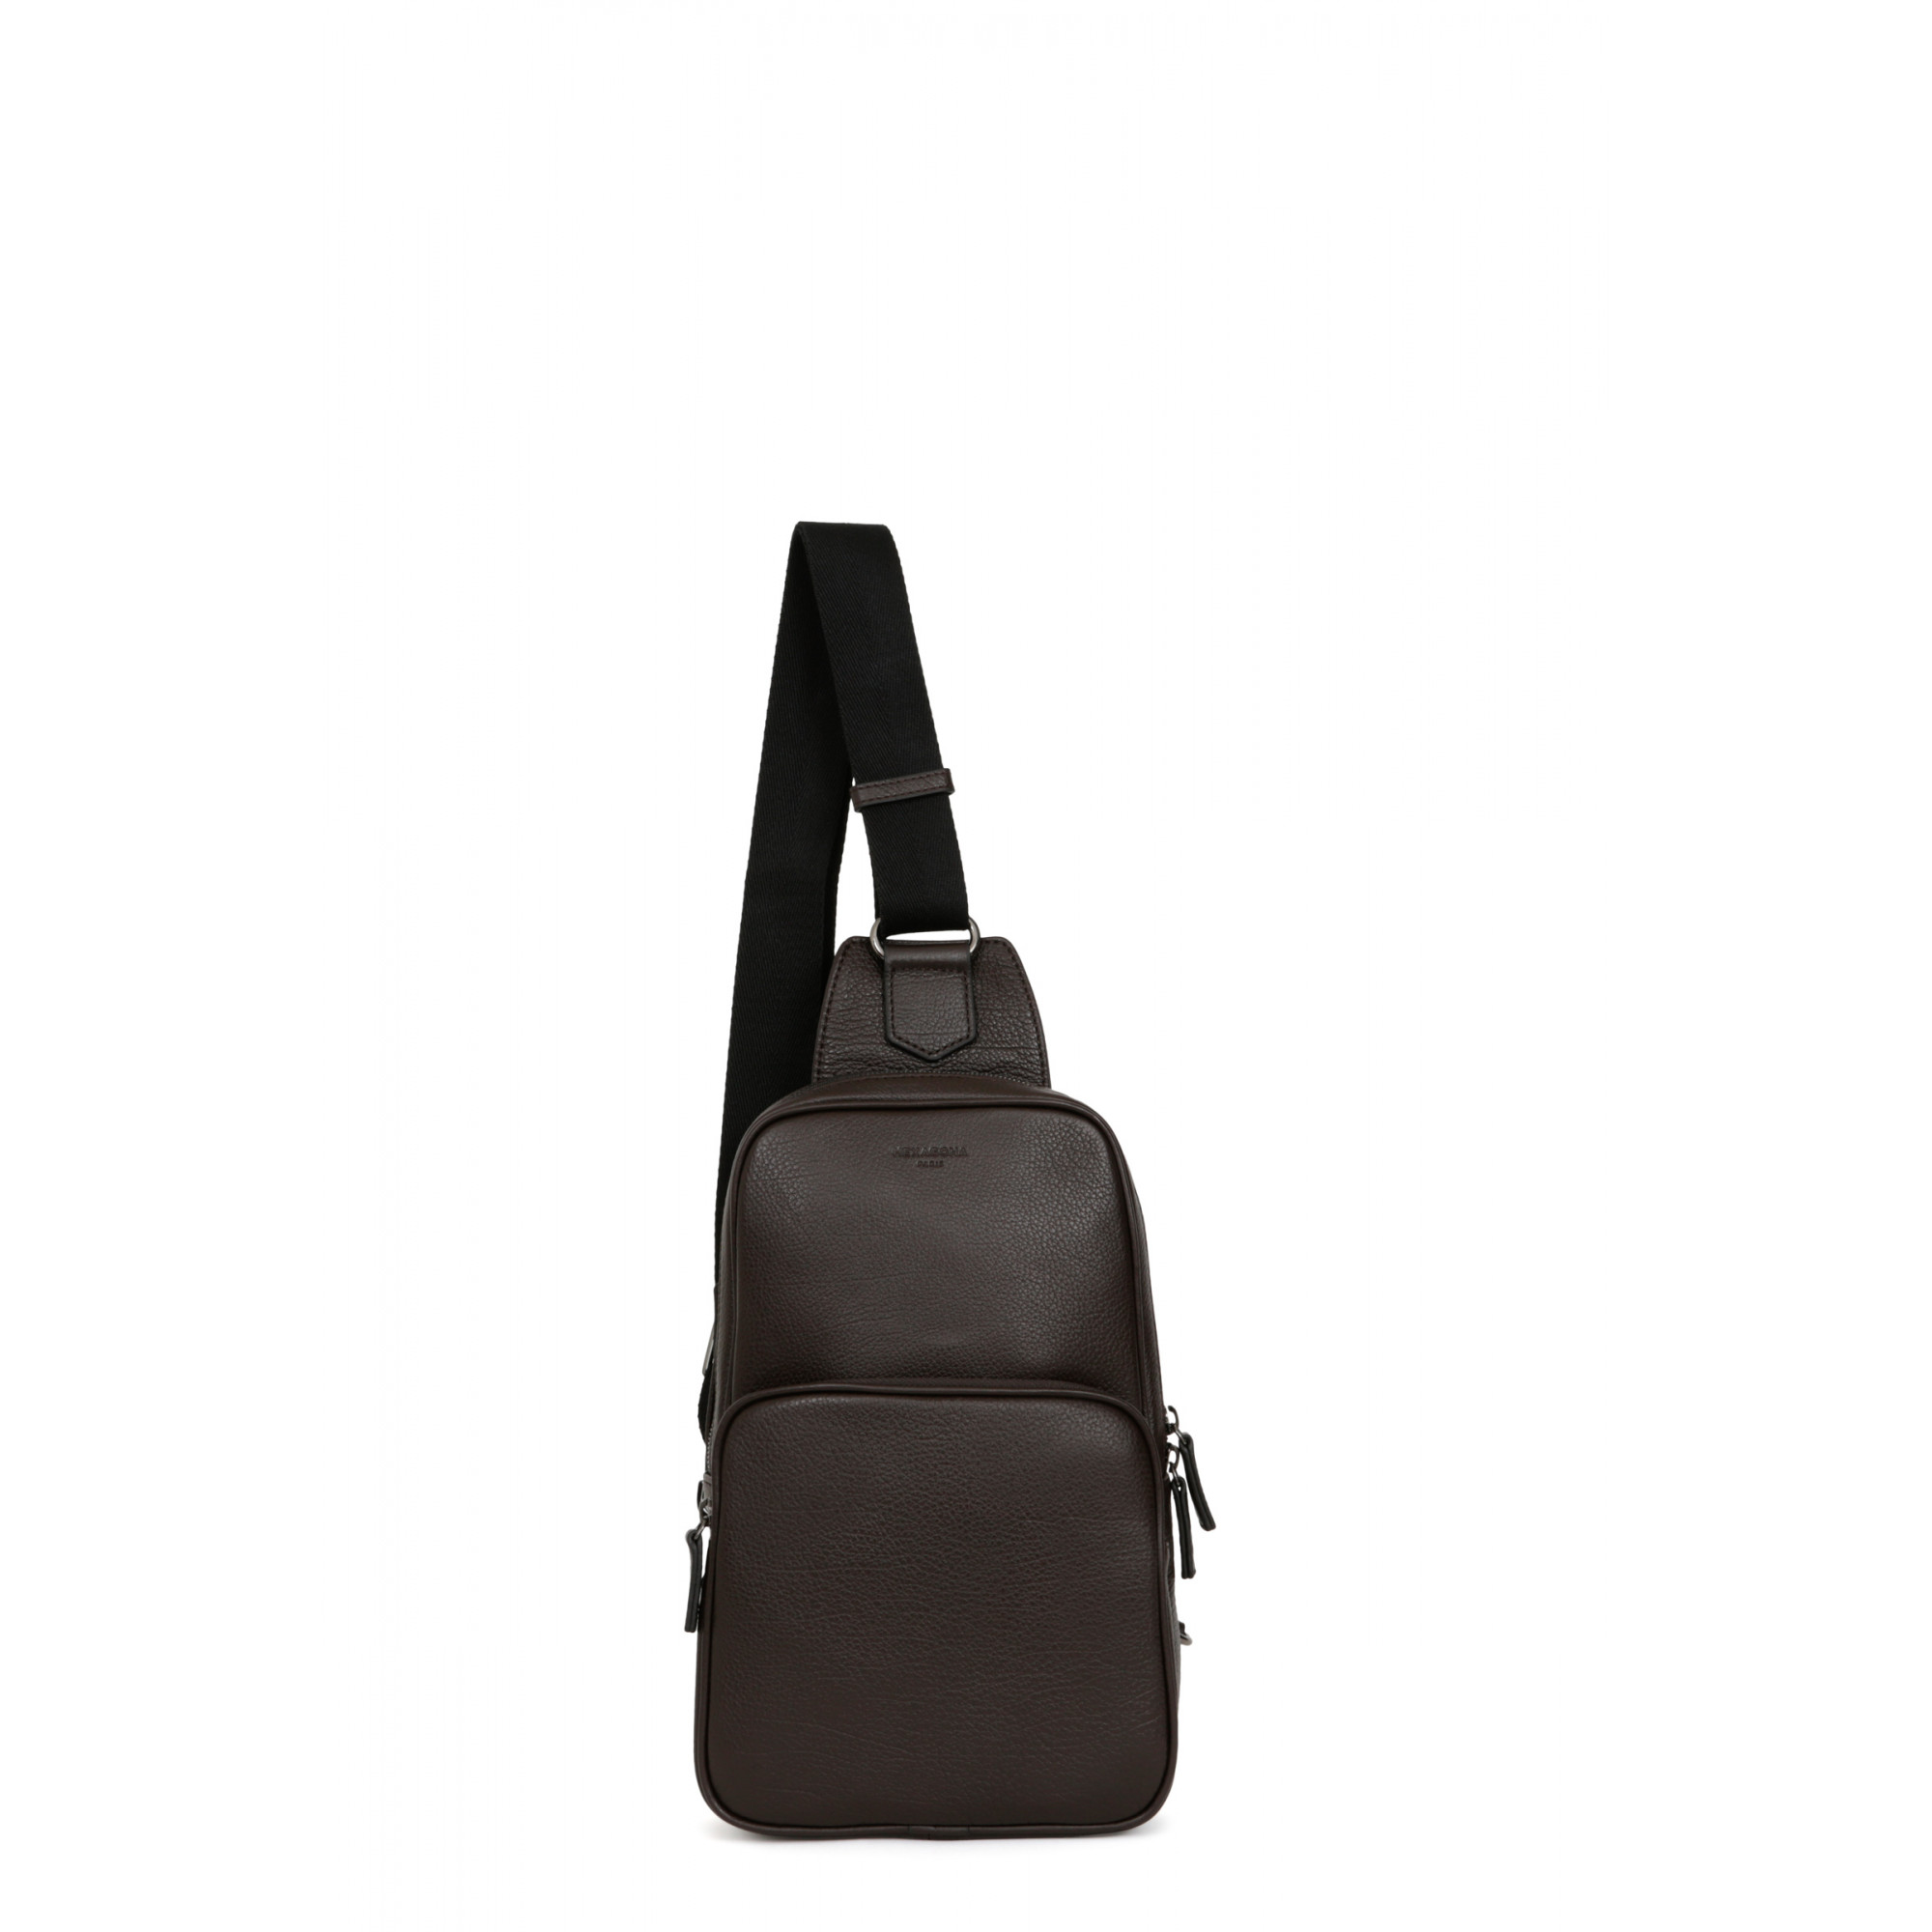 Leather one strap backpack